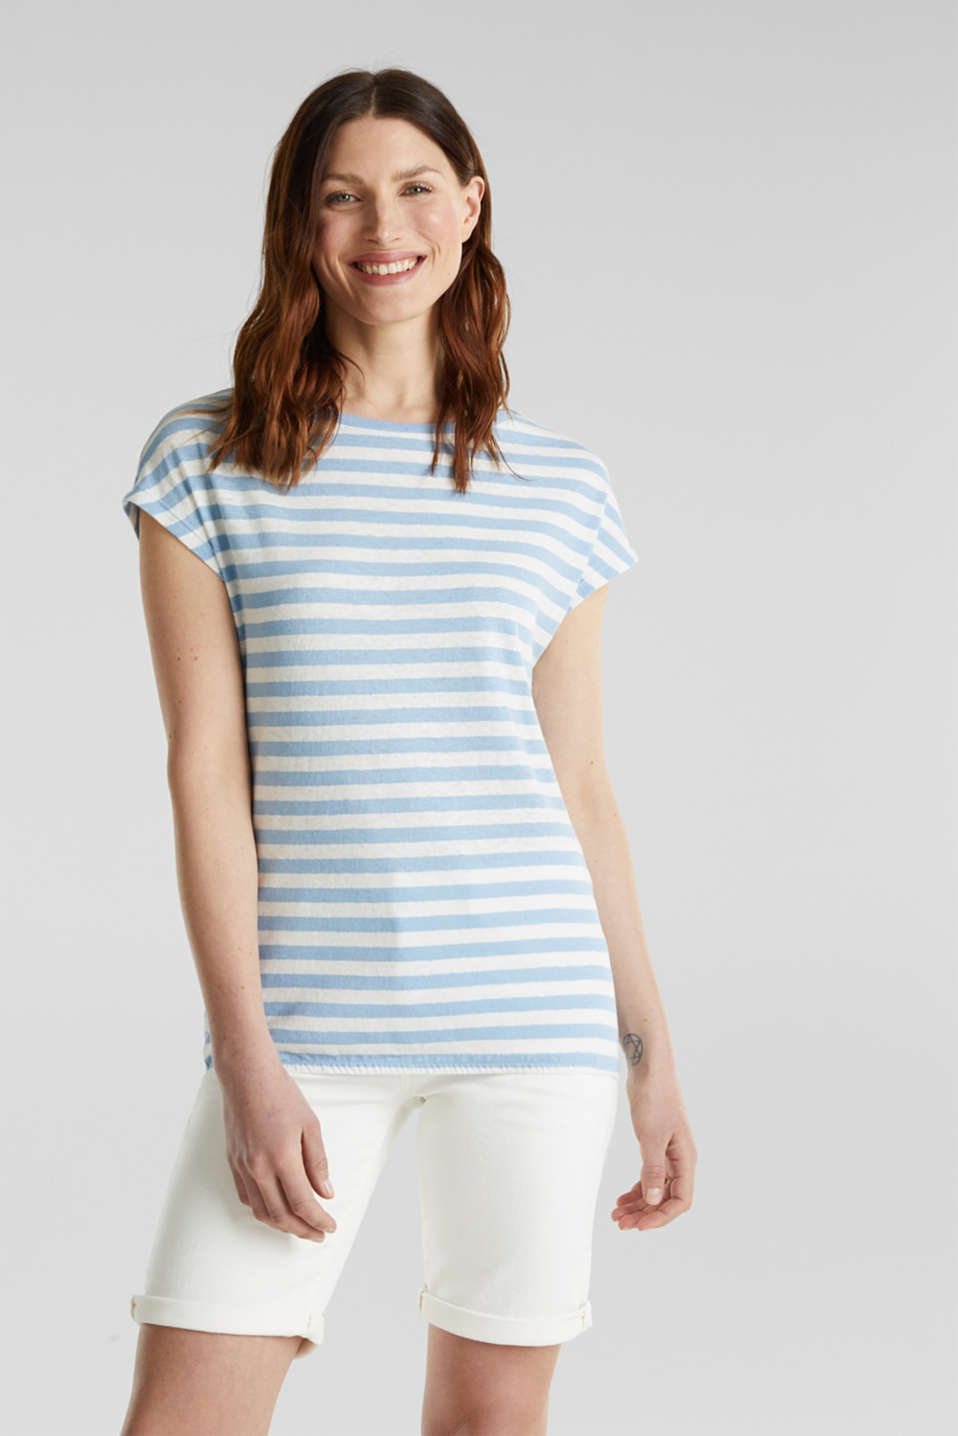 Esprit - Blended linen top with an elasticated waistband